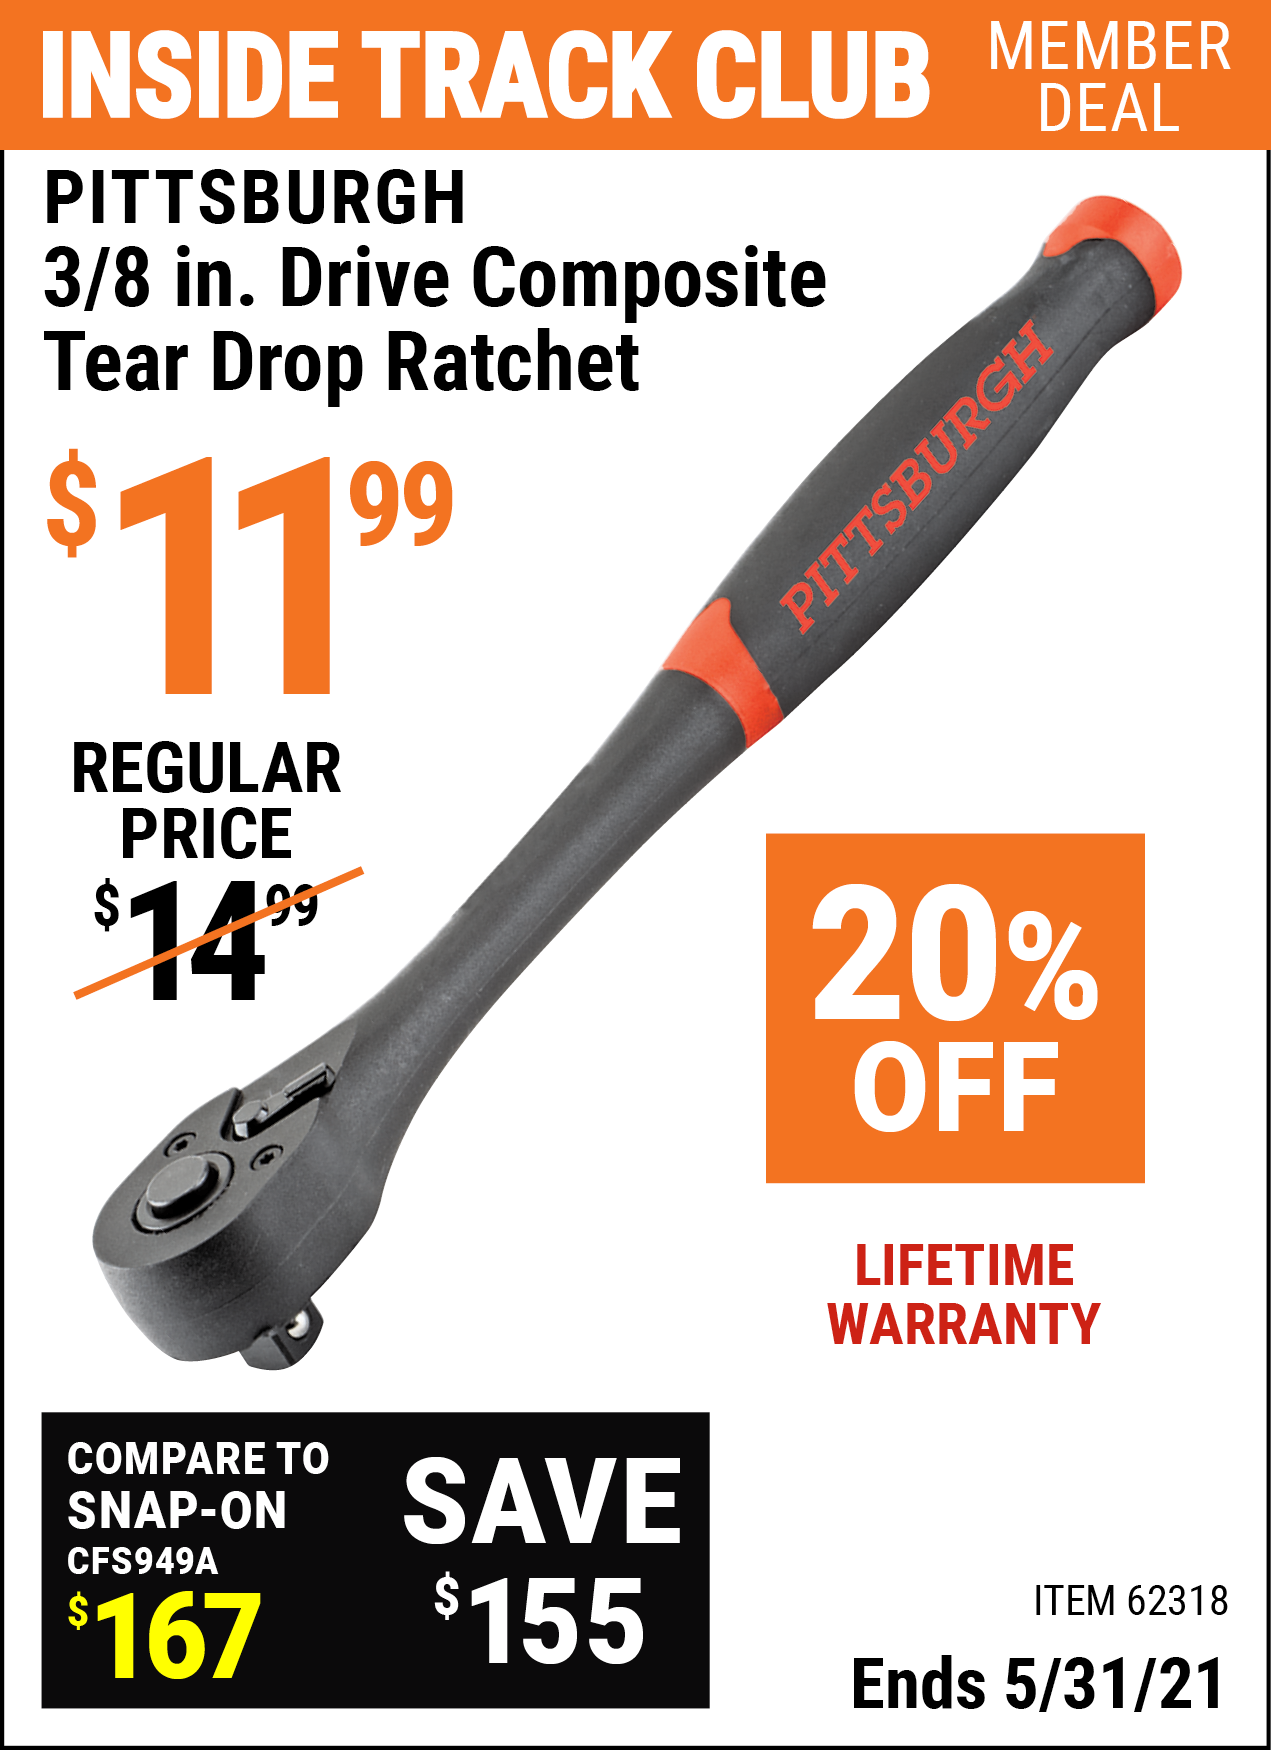 Inside Track Club members can buy the PITTSBURGH 3/8 in. Drive Professional Composite Tear Drop Ratchet (Item 62318) for $11.99, valid through 5/31/2021.